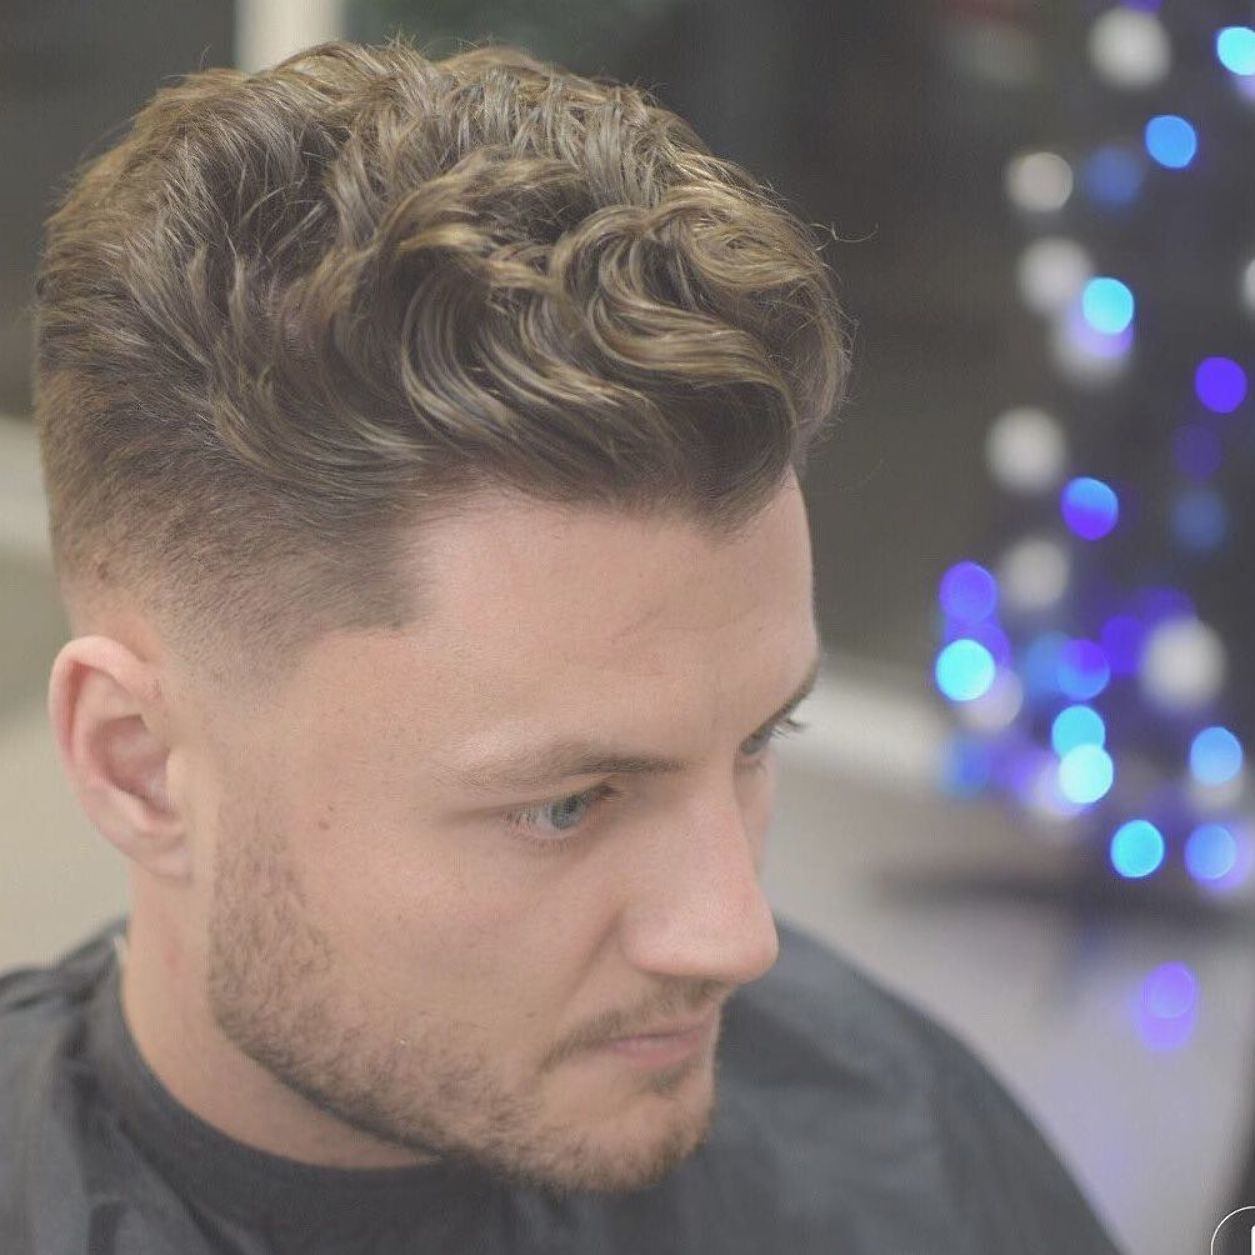 Cool Men S Haircuts For Wavy Hair 2018 Update Haircuts For Wavy Hair Wavy Hair Men Thick Wavy Hair